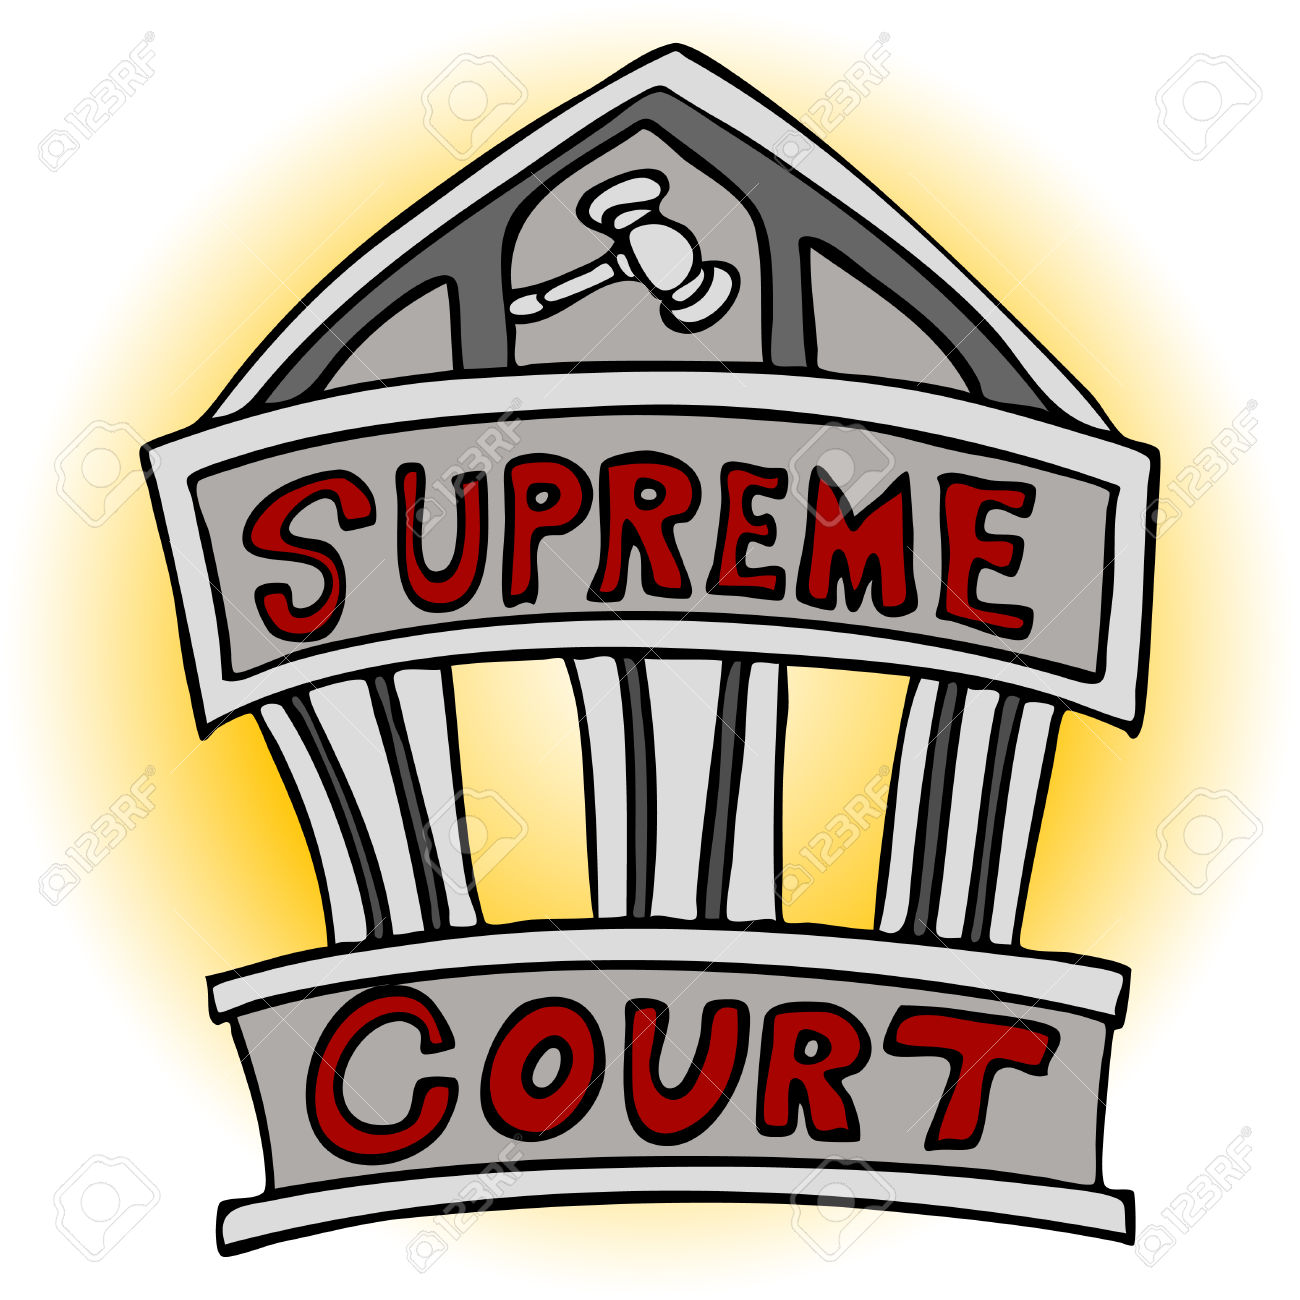 An Image Of The Supreme Court Building. -An image of the supreme court building. Stock Vector - 8186968-11